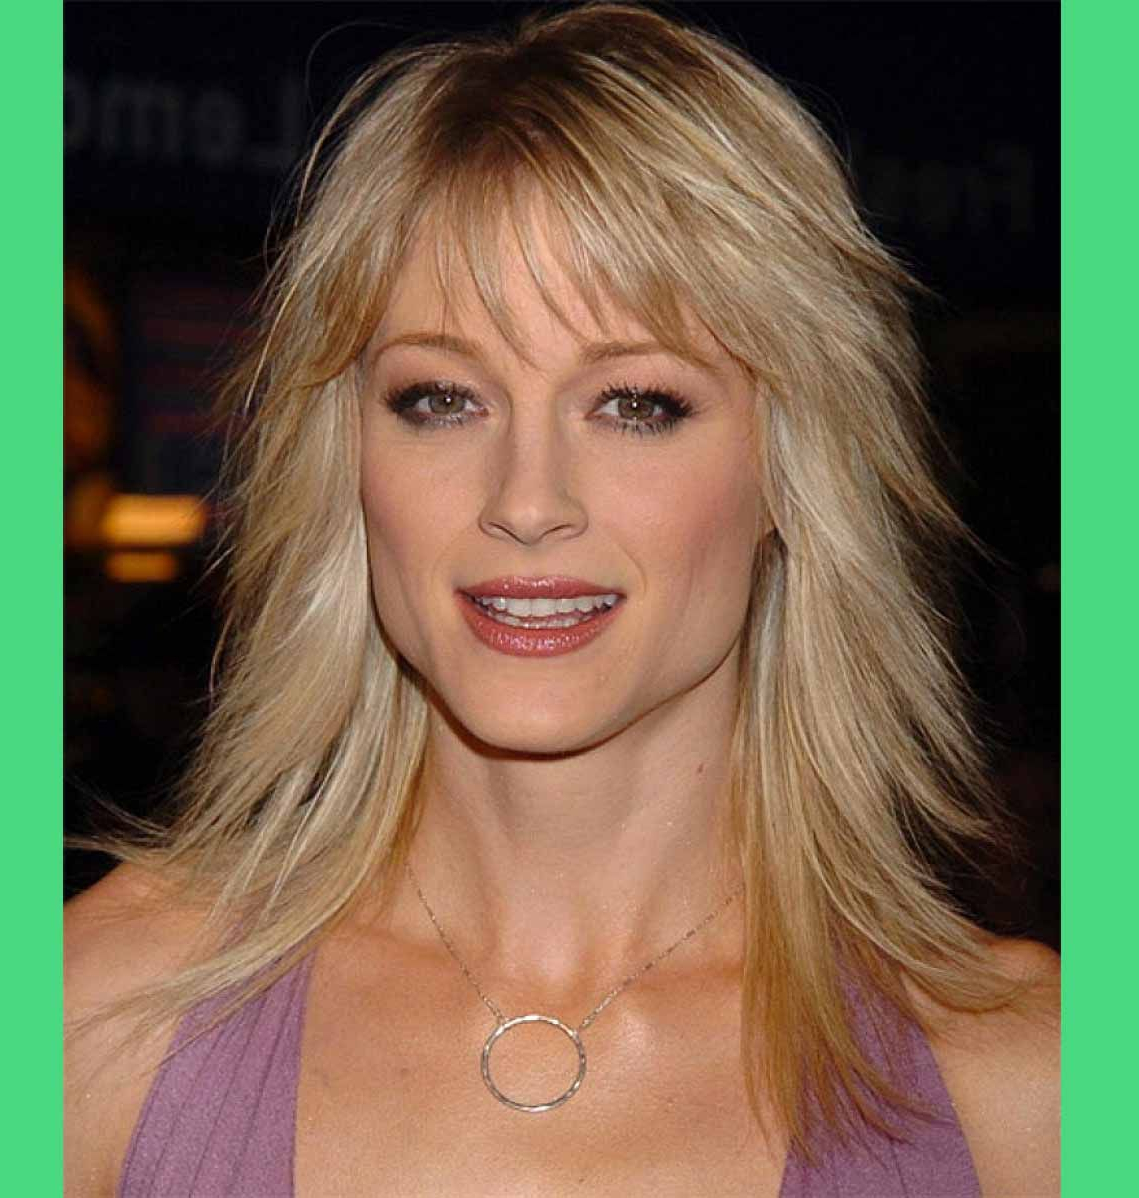 Medium Length Blonde Hairstyles For Thin Fine Hair With Side Bangs Regarding Latest Medium Hairstyles For Thin Hair (View 13 of 20)